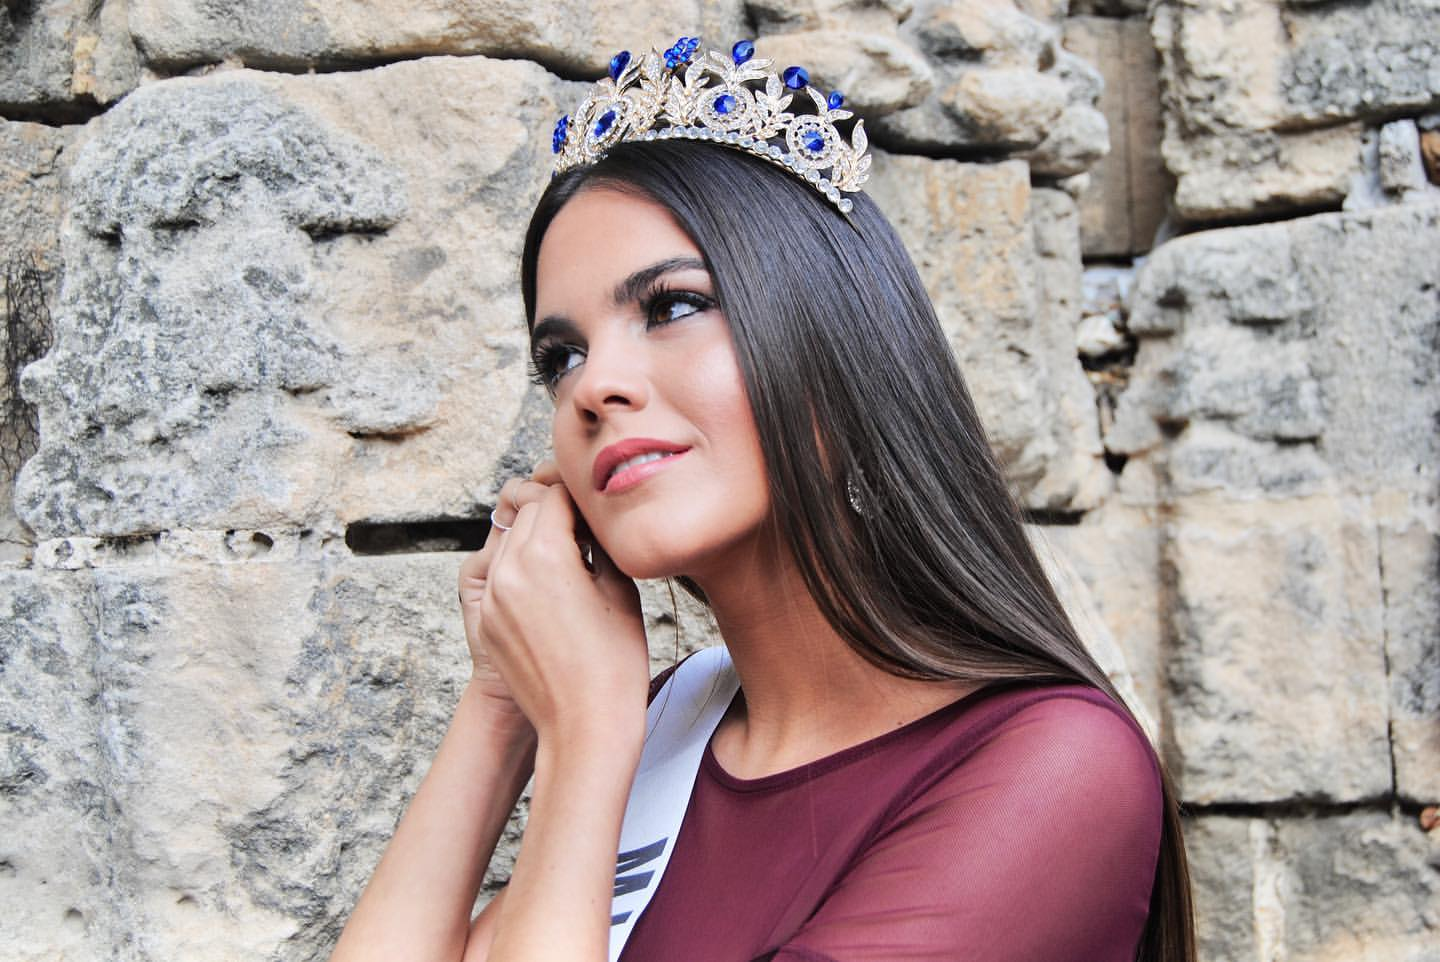 candidatas a miss world spain 2019. final: 18 agosto. 59647070_341200243421578_3529137522834624597_n